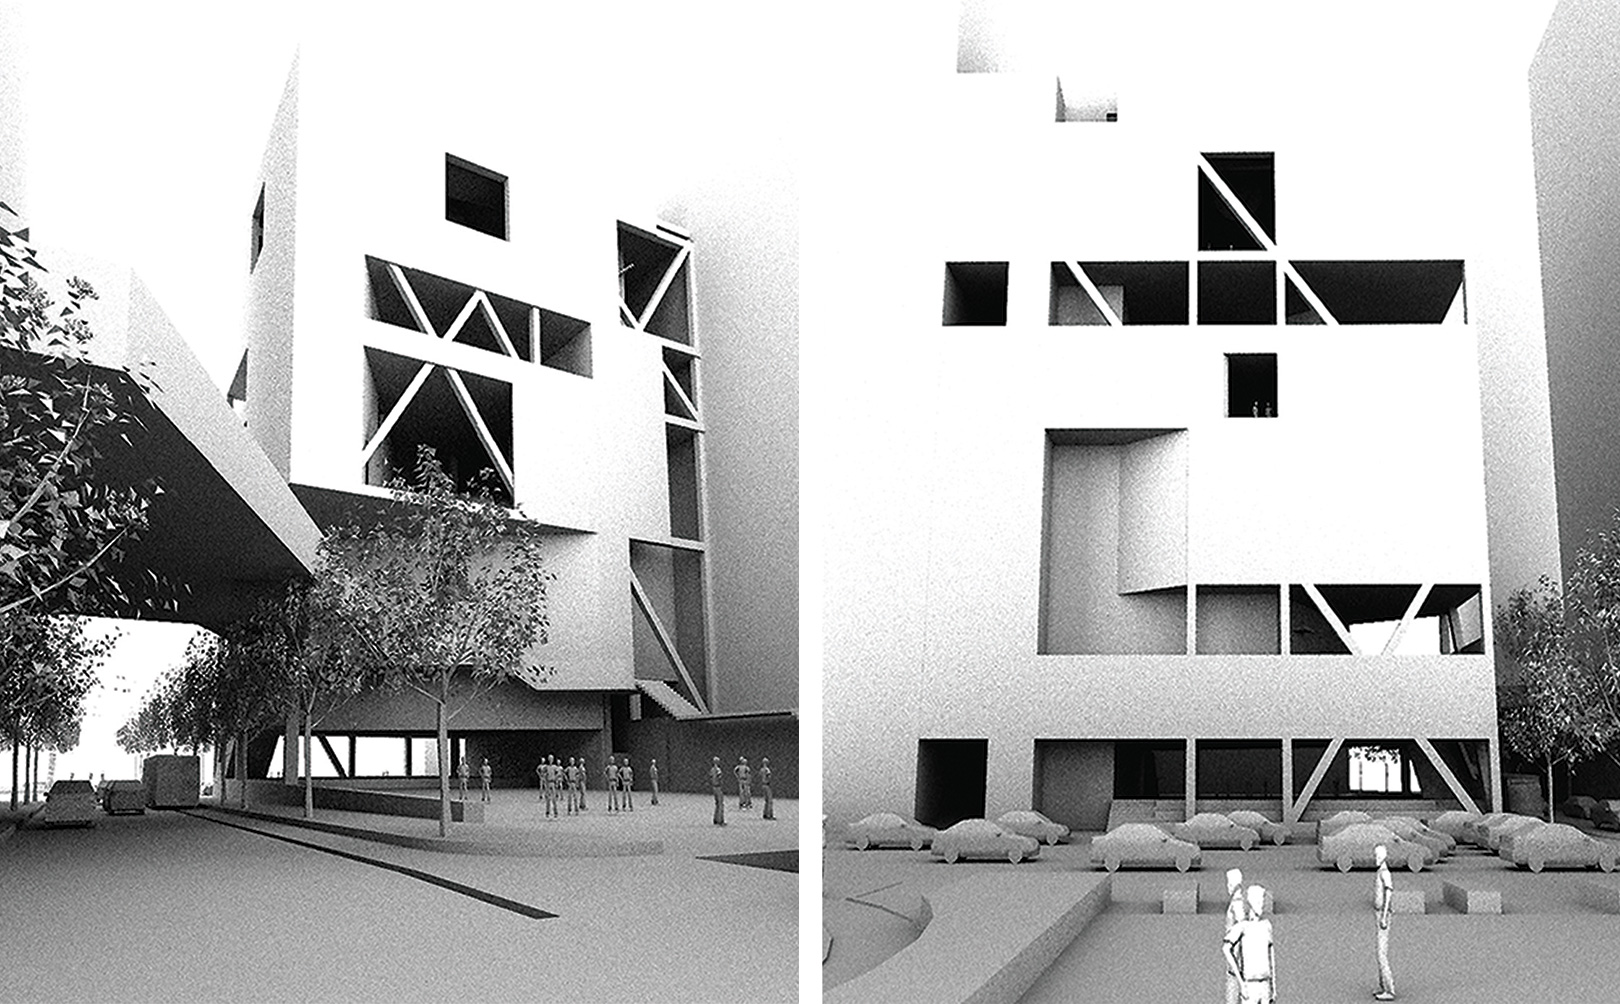 Study perspectives of the SPCS center from the two major public spaces on either side of the facility